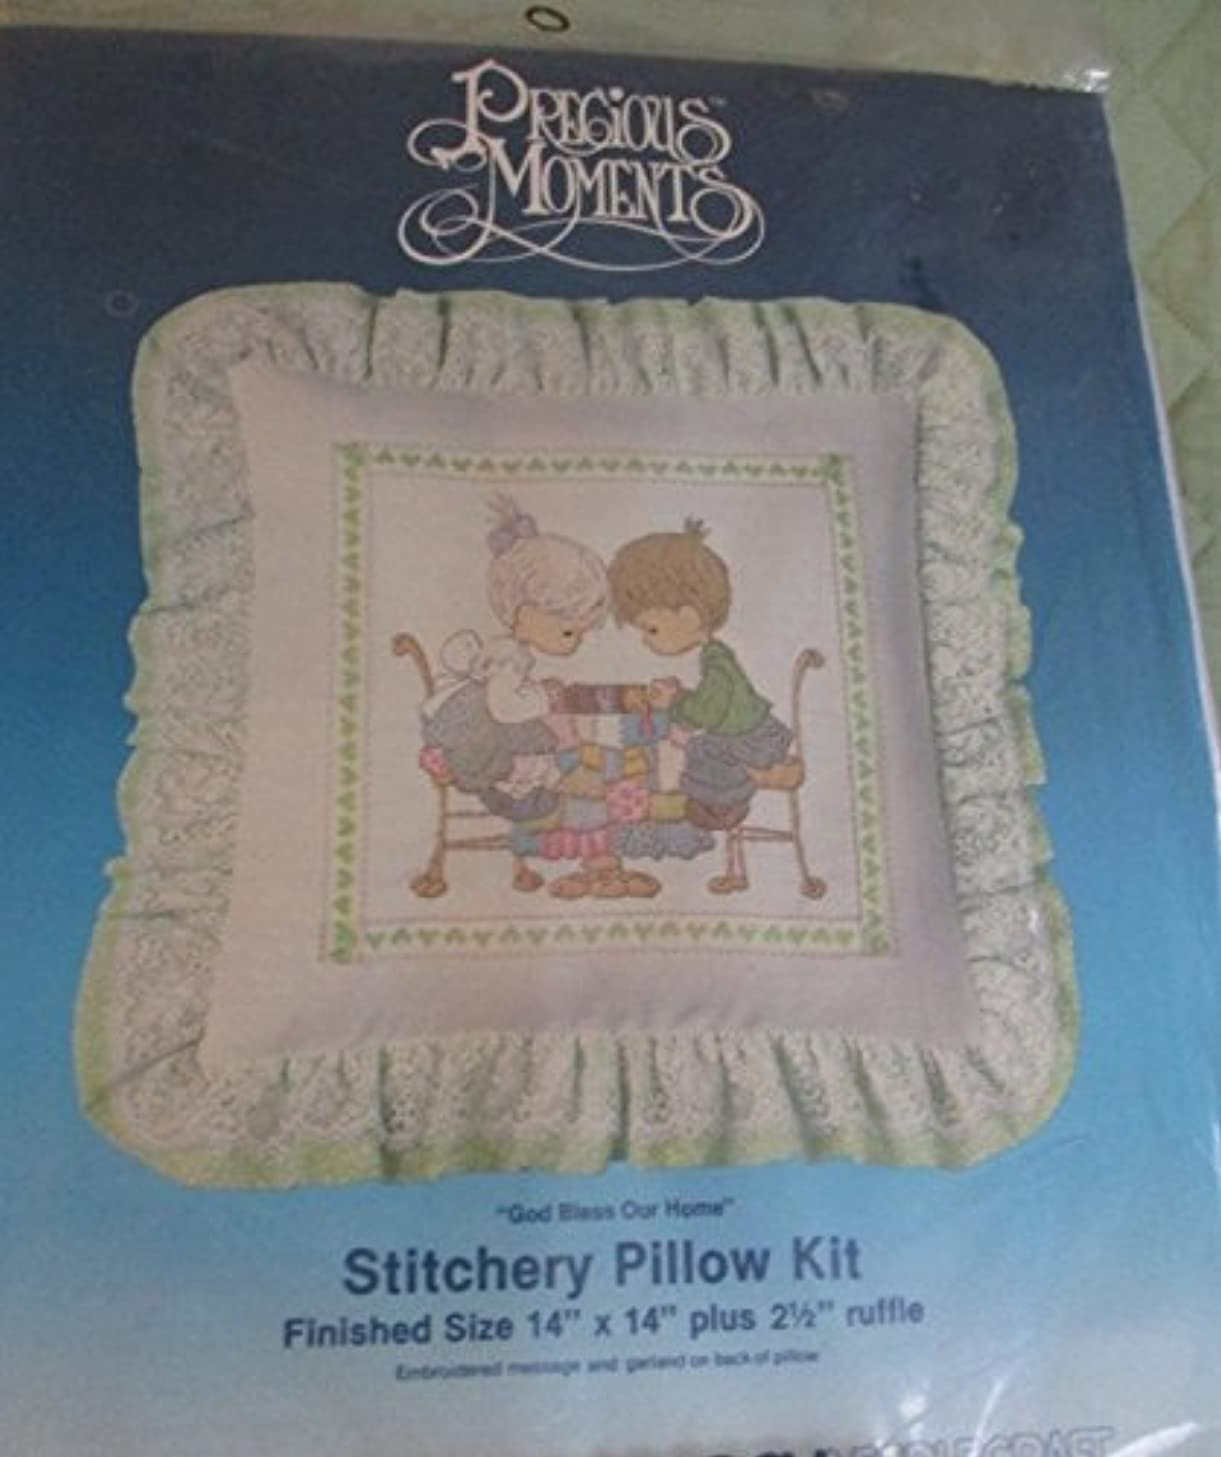 PRECIOUS MOMENTS VINTAGE PARAGON 1089 CREWEL STITCHERY PILLOW KIT - GOD BLESS OUR HOME - DATED 1984